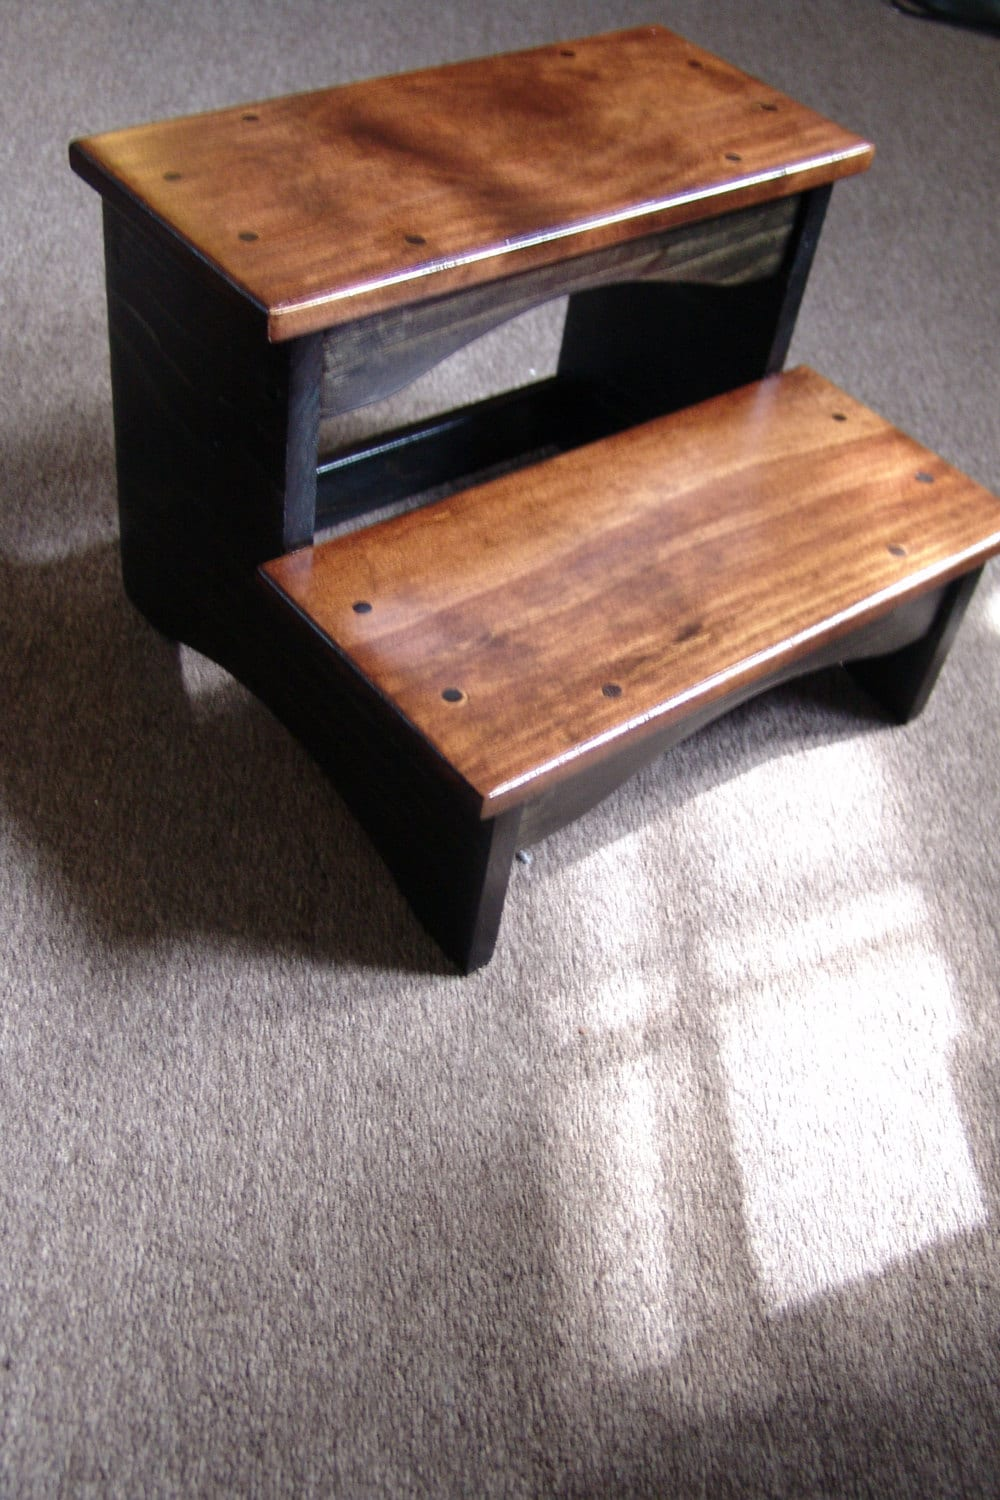 handcrafted heavy duty 2 step stool solid wood wooden bedside. Black Bedroom Furniture Sets. Home Design Ideas